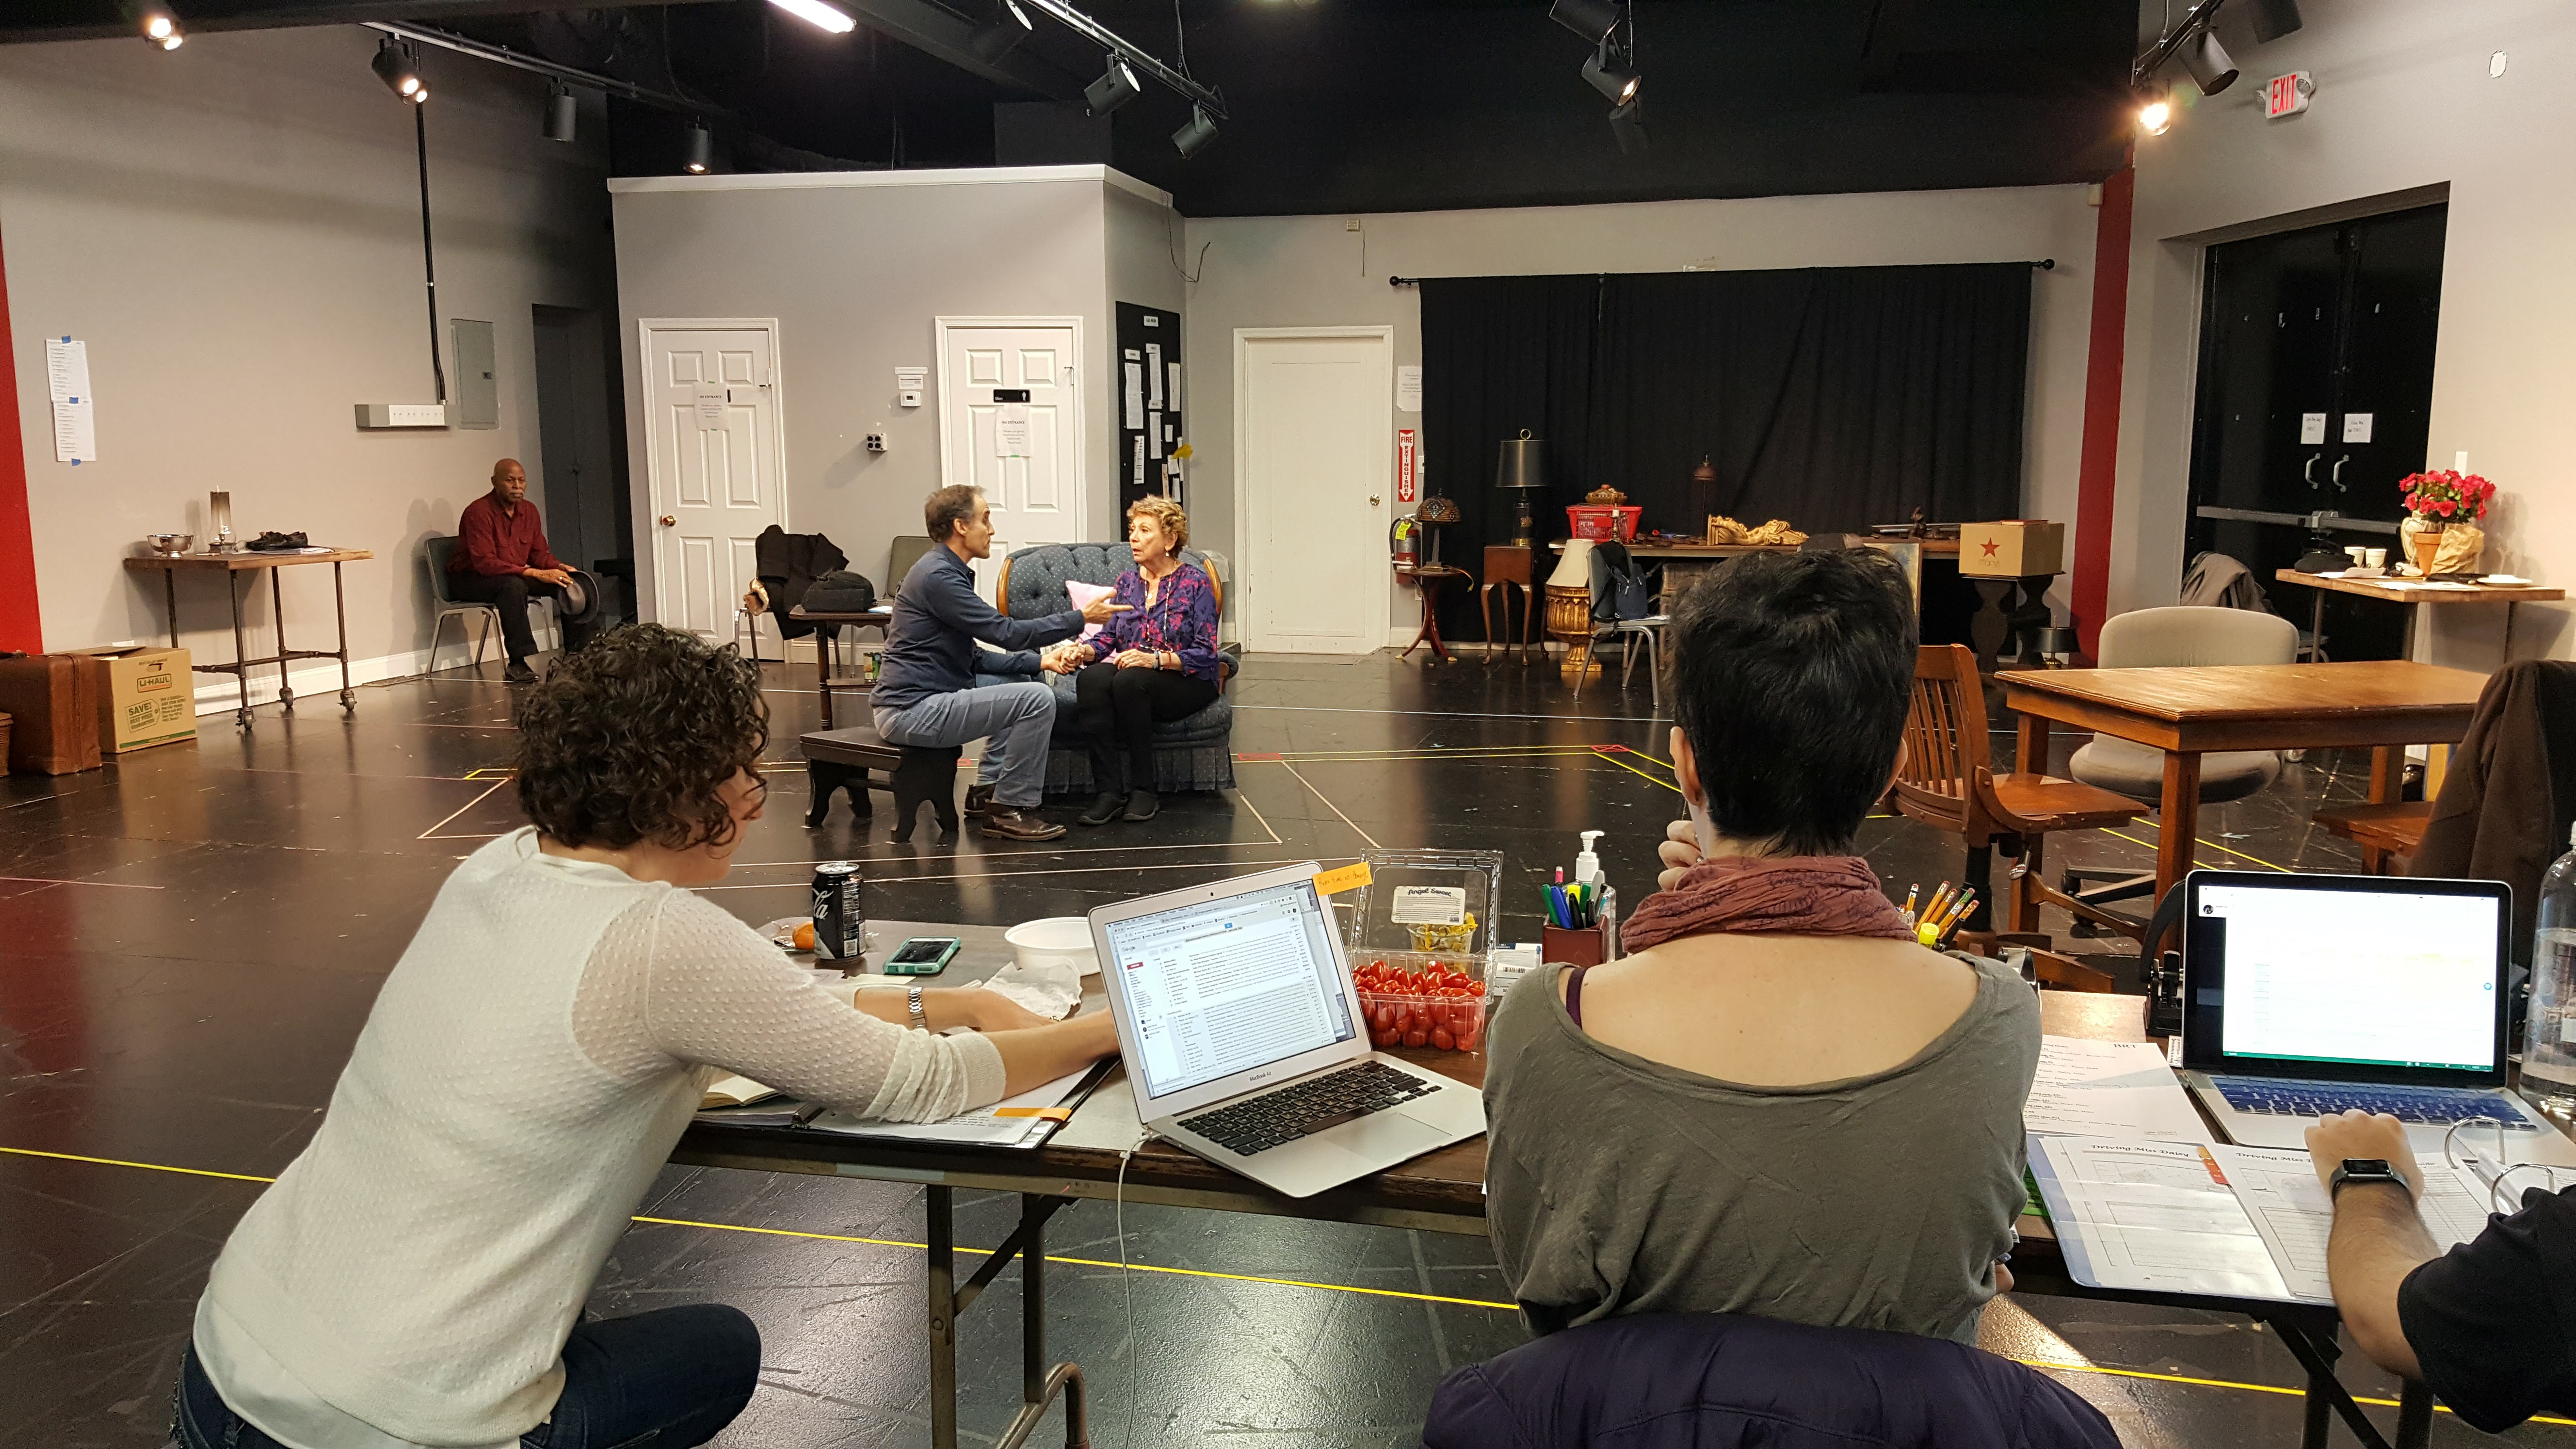 Marvin Bell as Hoke (far left); Michael Samuel Kaplan as Boolie and Lucy Martin as Daisy (center); director Amy Kaissar (front left) and stage manager Lauren Bieber (front right) at desk during rehearsal. Photo provided